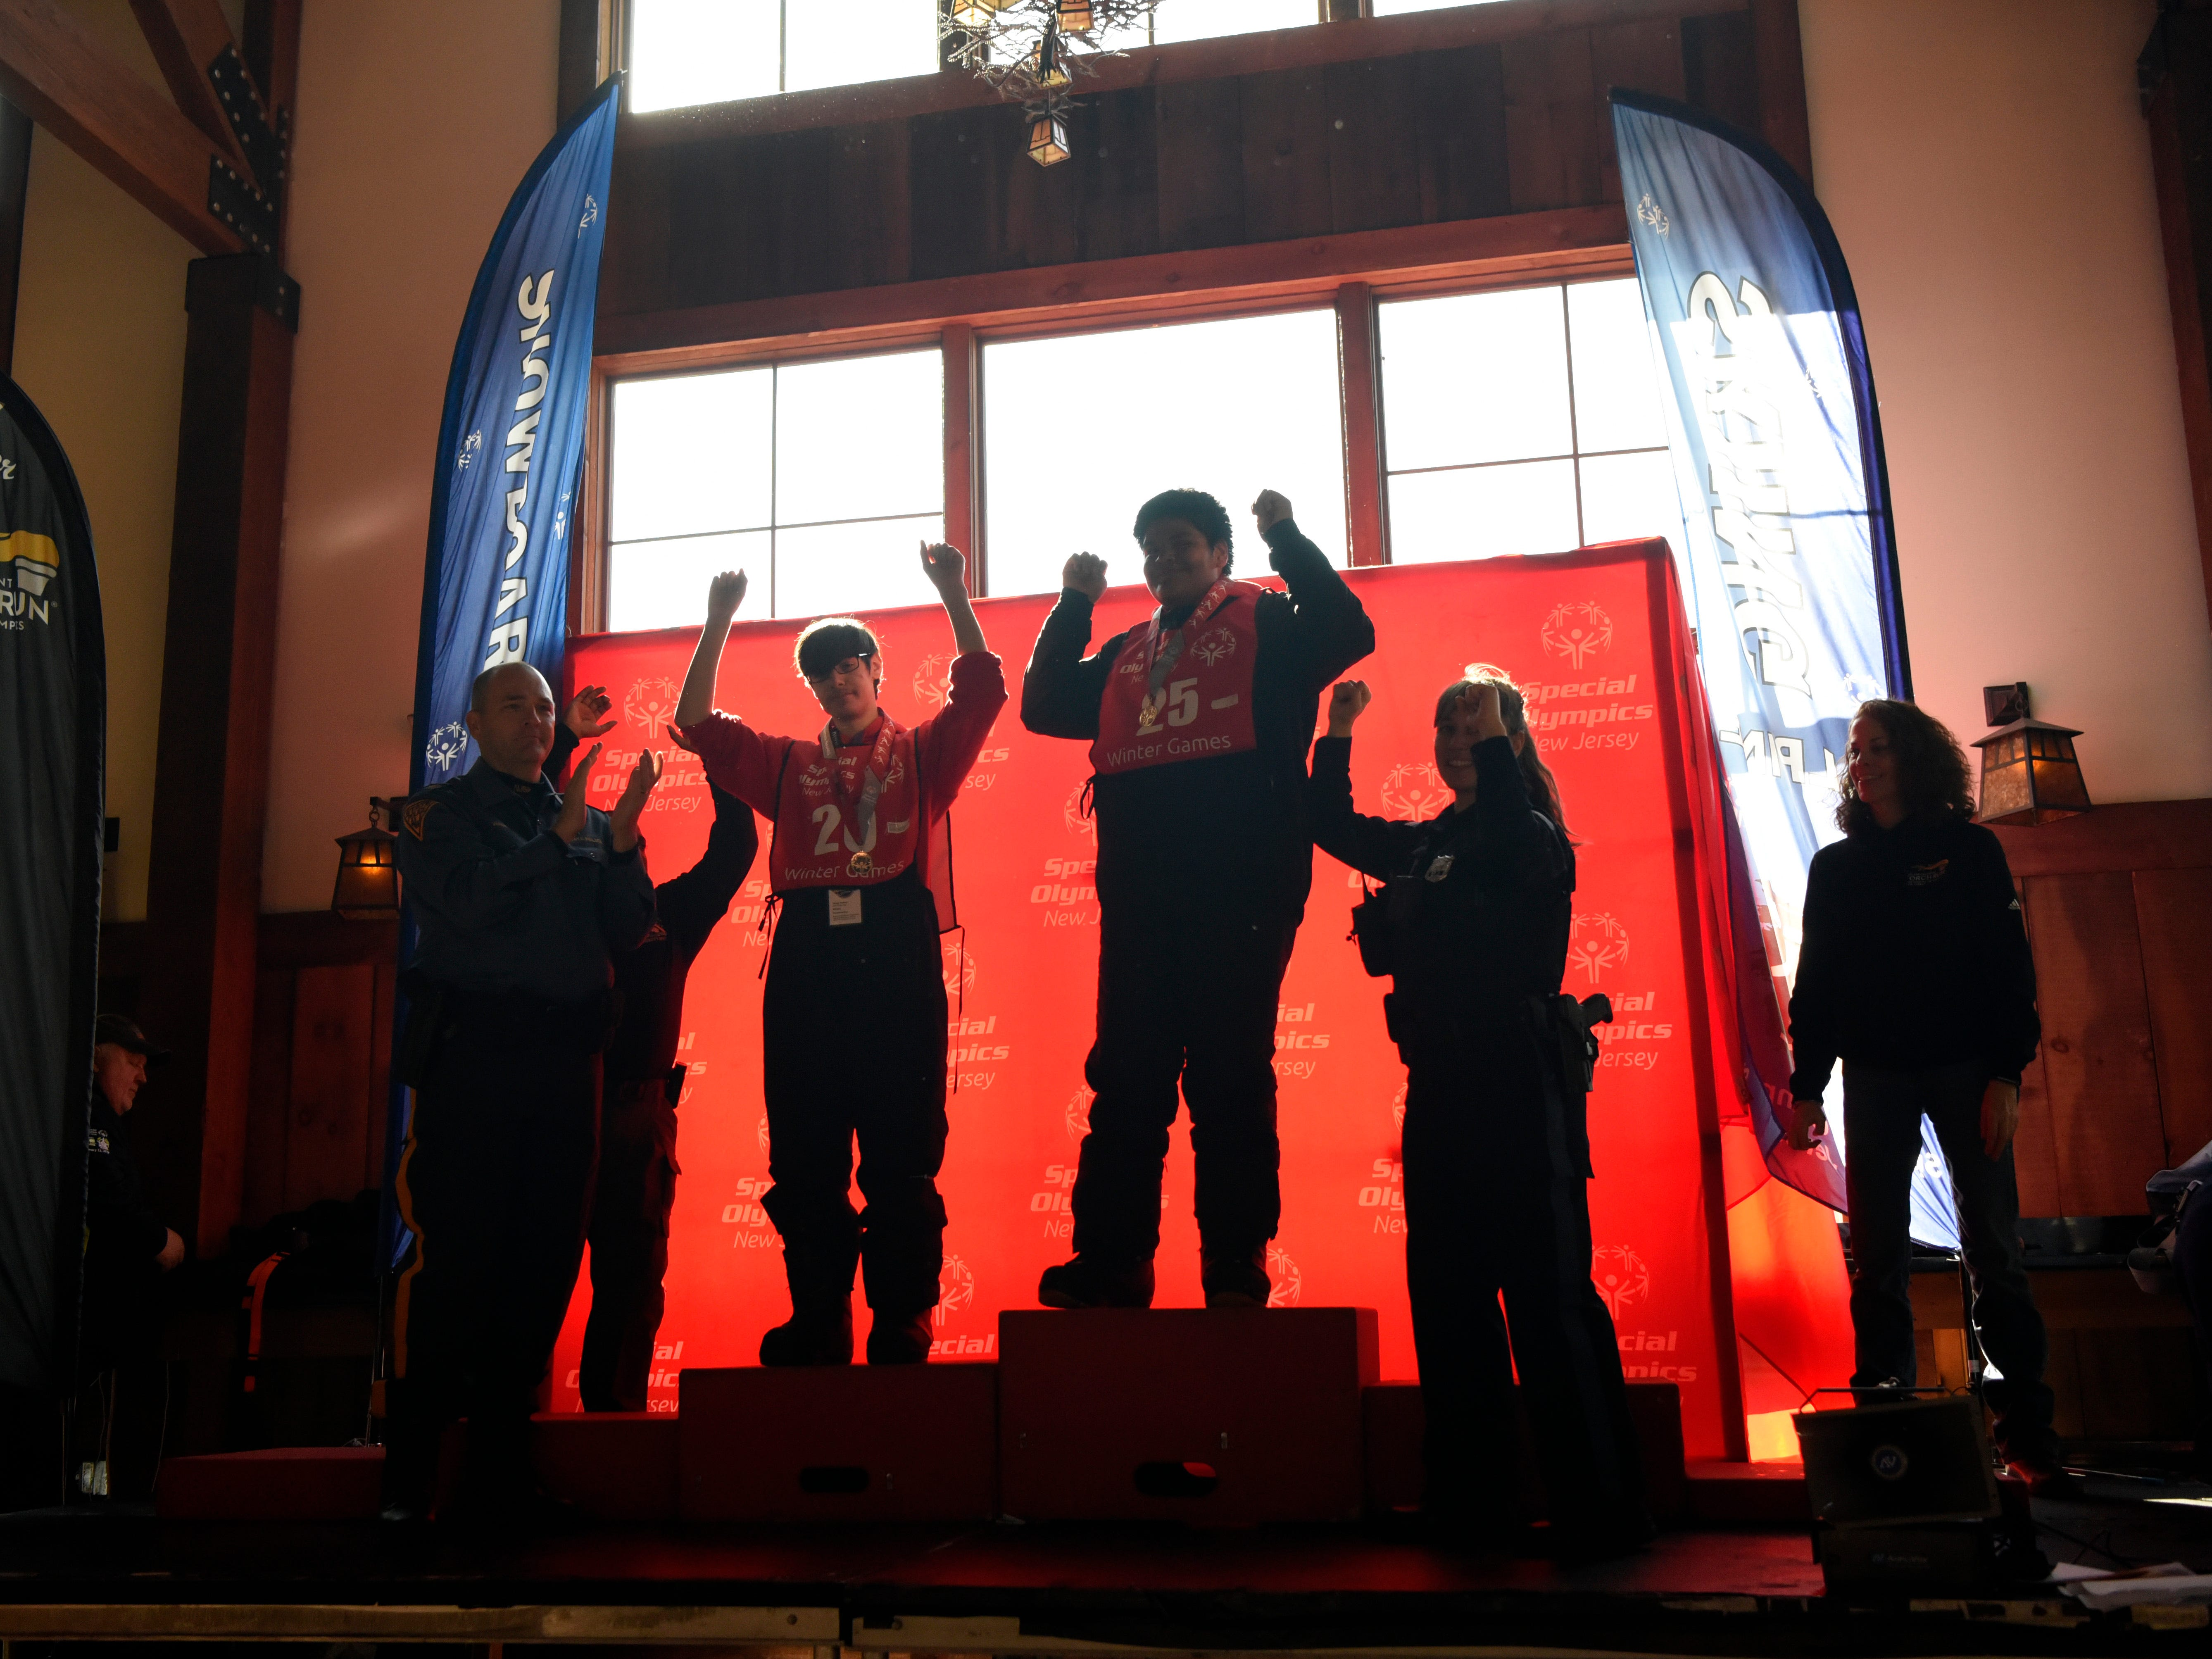 Athletes celebrate during a medal ceremony at Mountain Creek Ski Resort during the Special Olympics New Jersey 2019 Winter Games on Tuesday, Feb. 5, 2019, in Vernon.